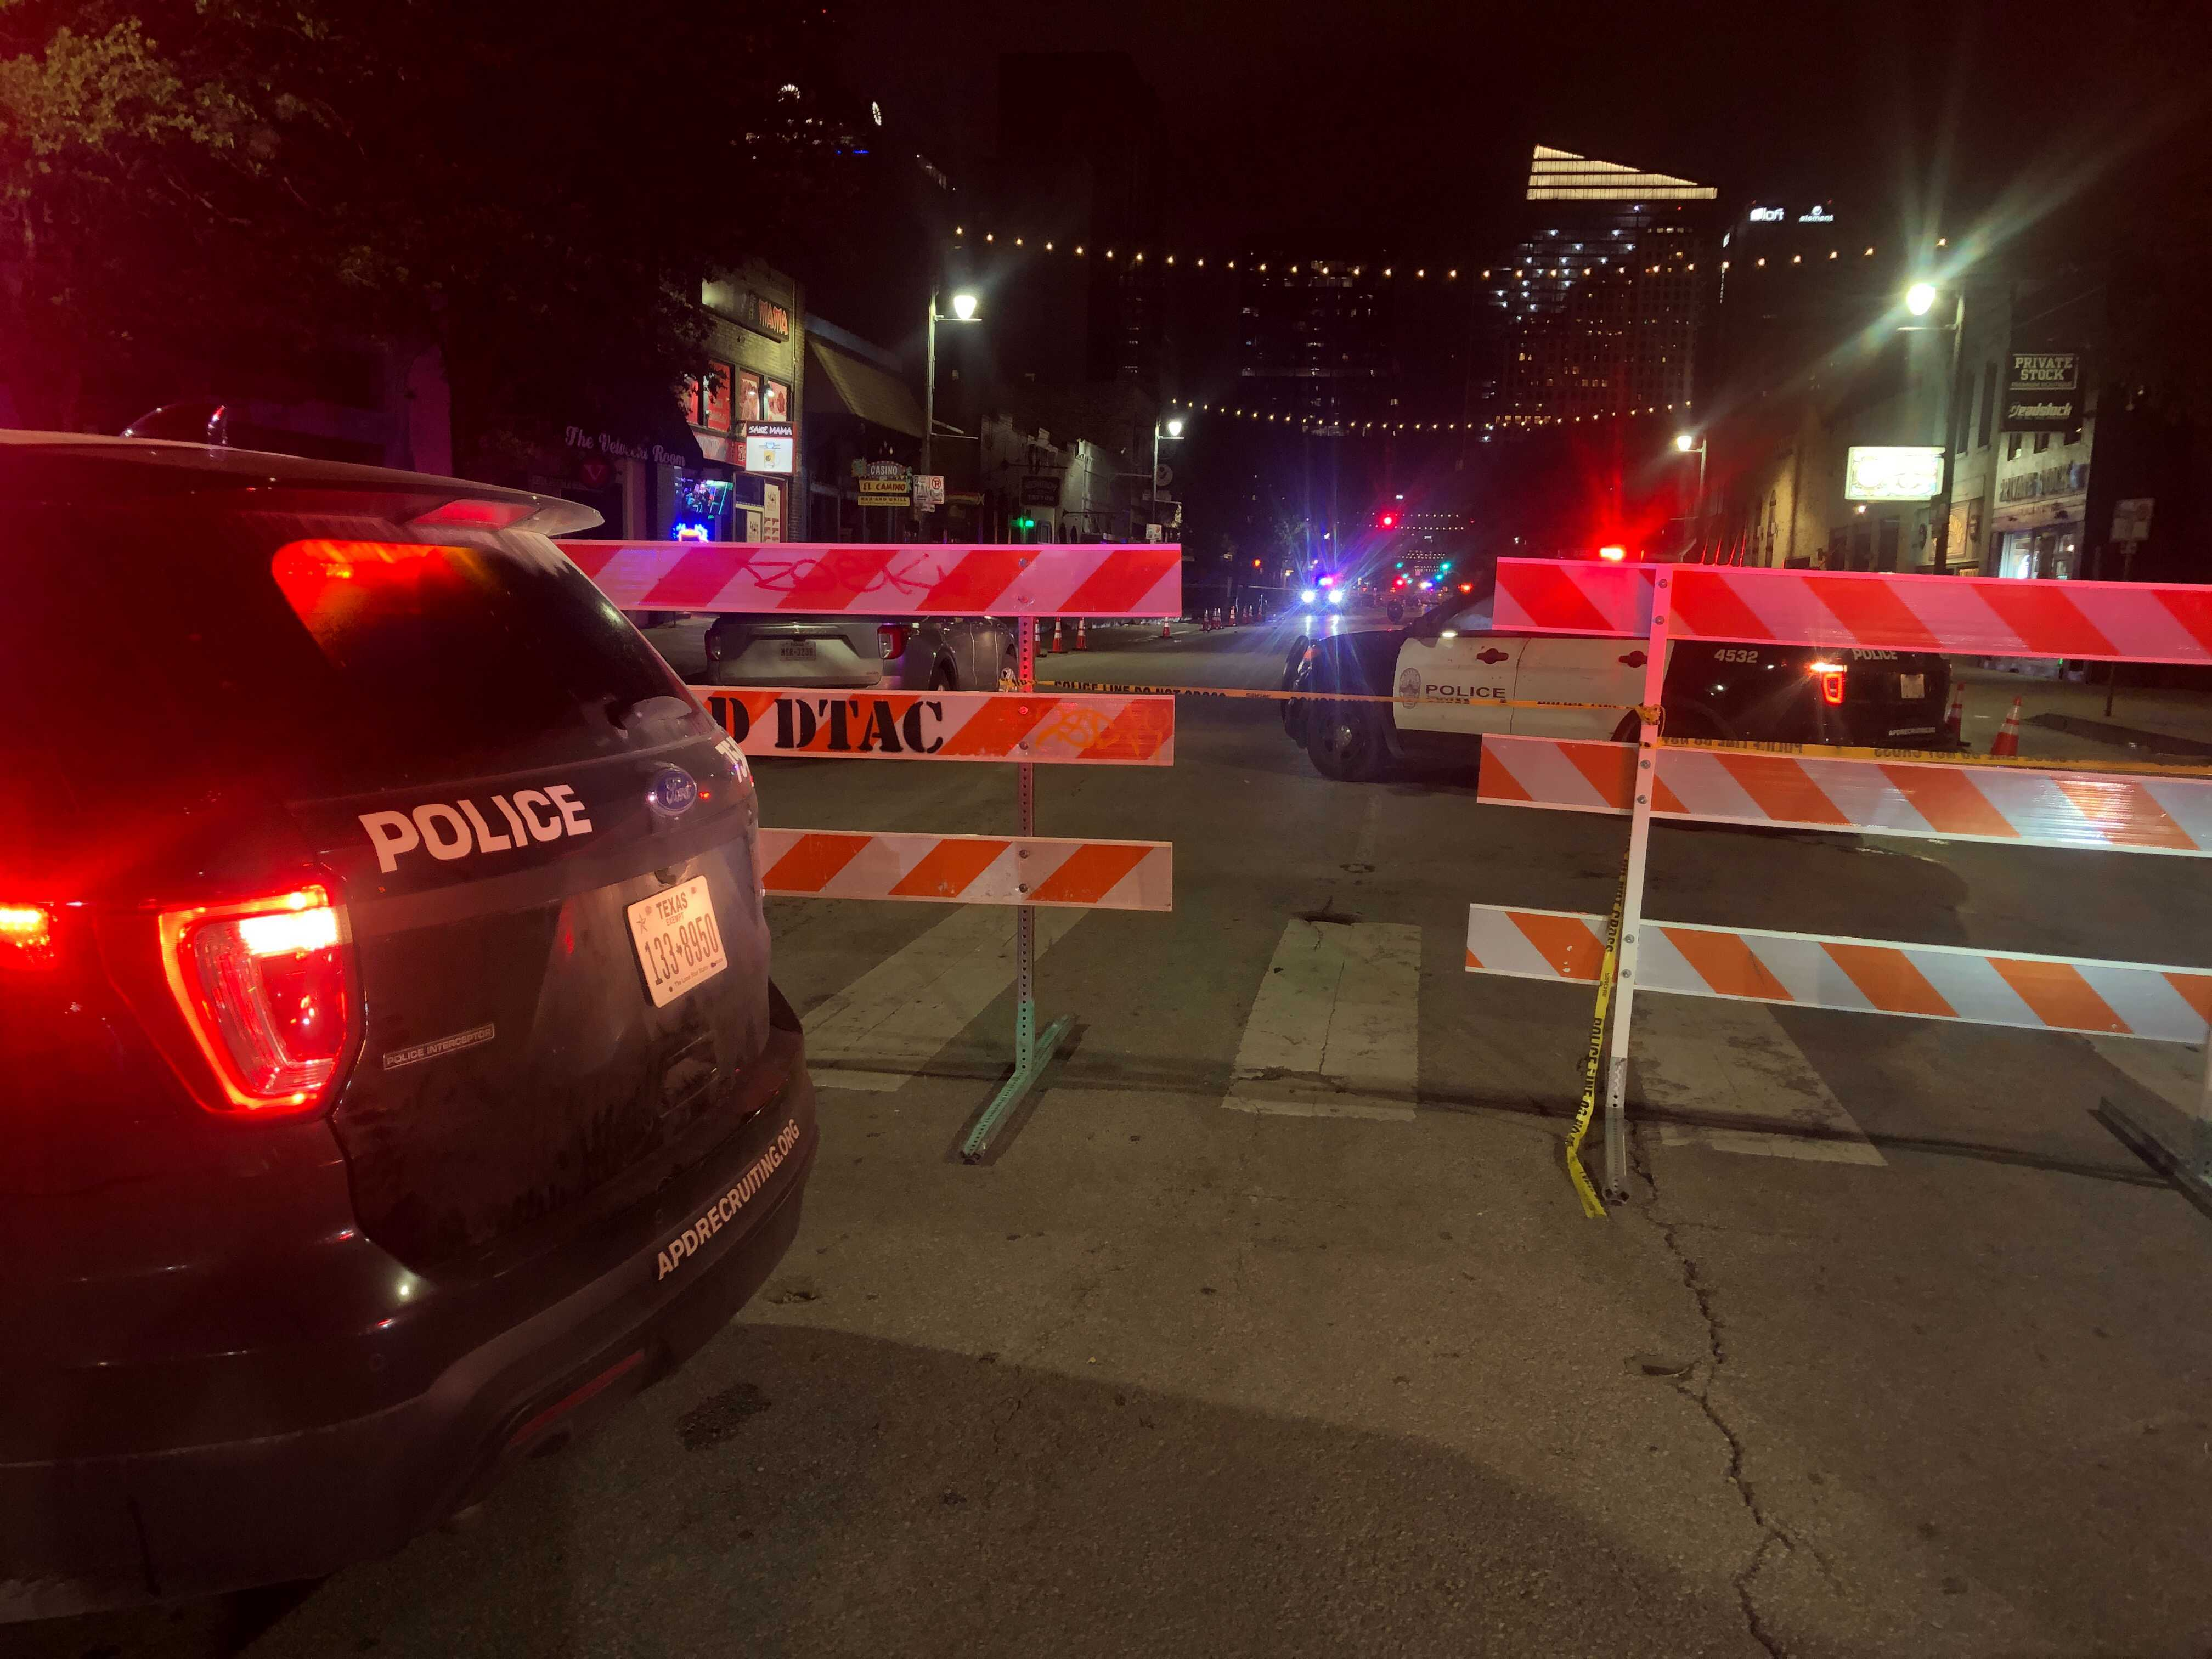 At least 14 people are hurt after a mass shooting in downtown Austin on 6th Street near Trinity Street June 12, 2021 (KXAN Photo)